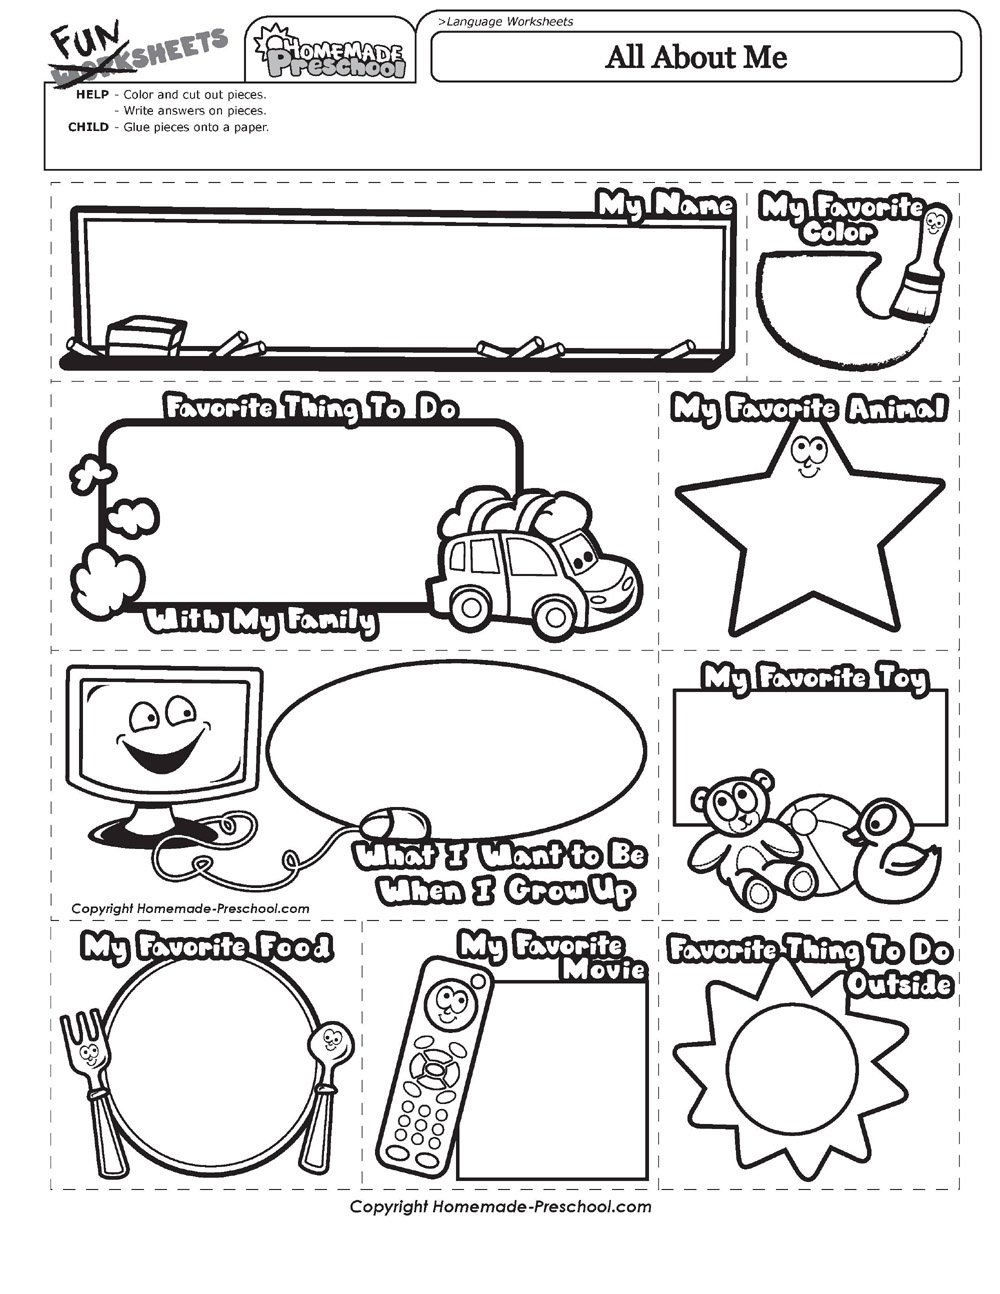 All About Me Coloring Pages All About Me Coloring Page Free